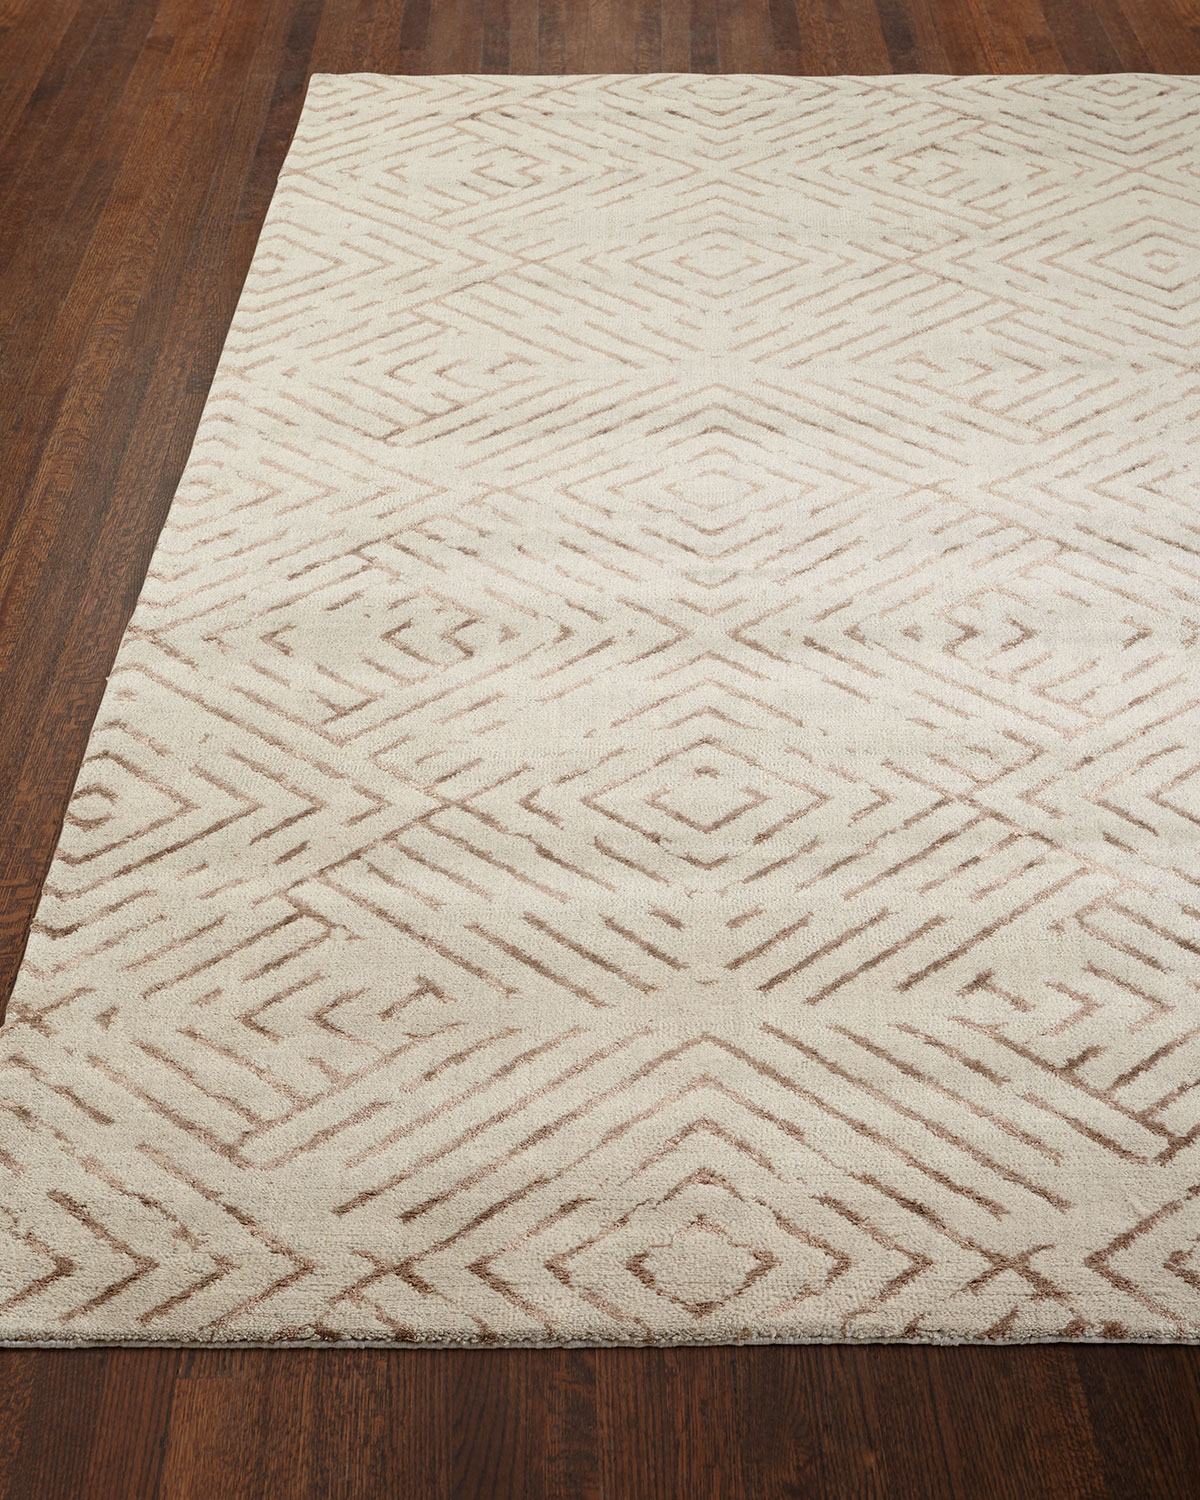 Understated Luxe Rug 10 X 14